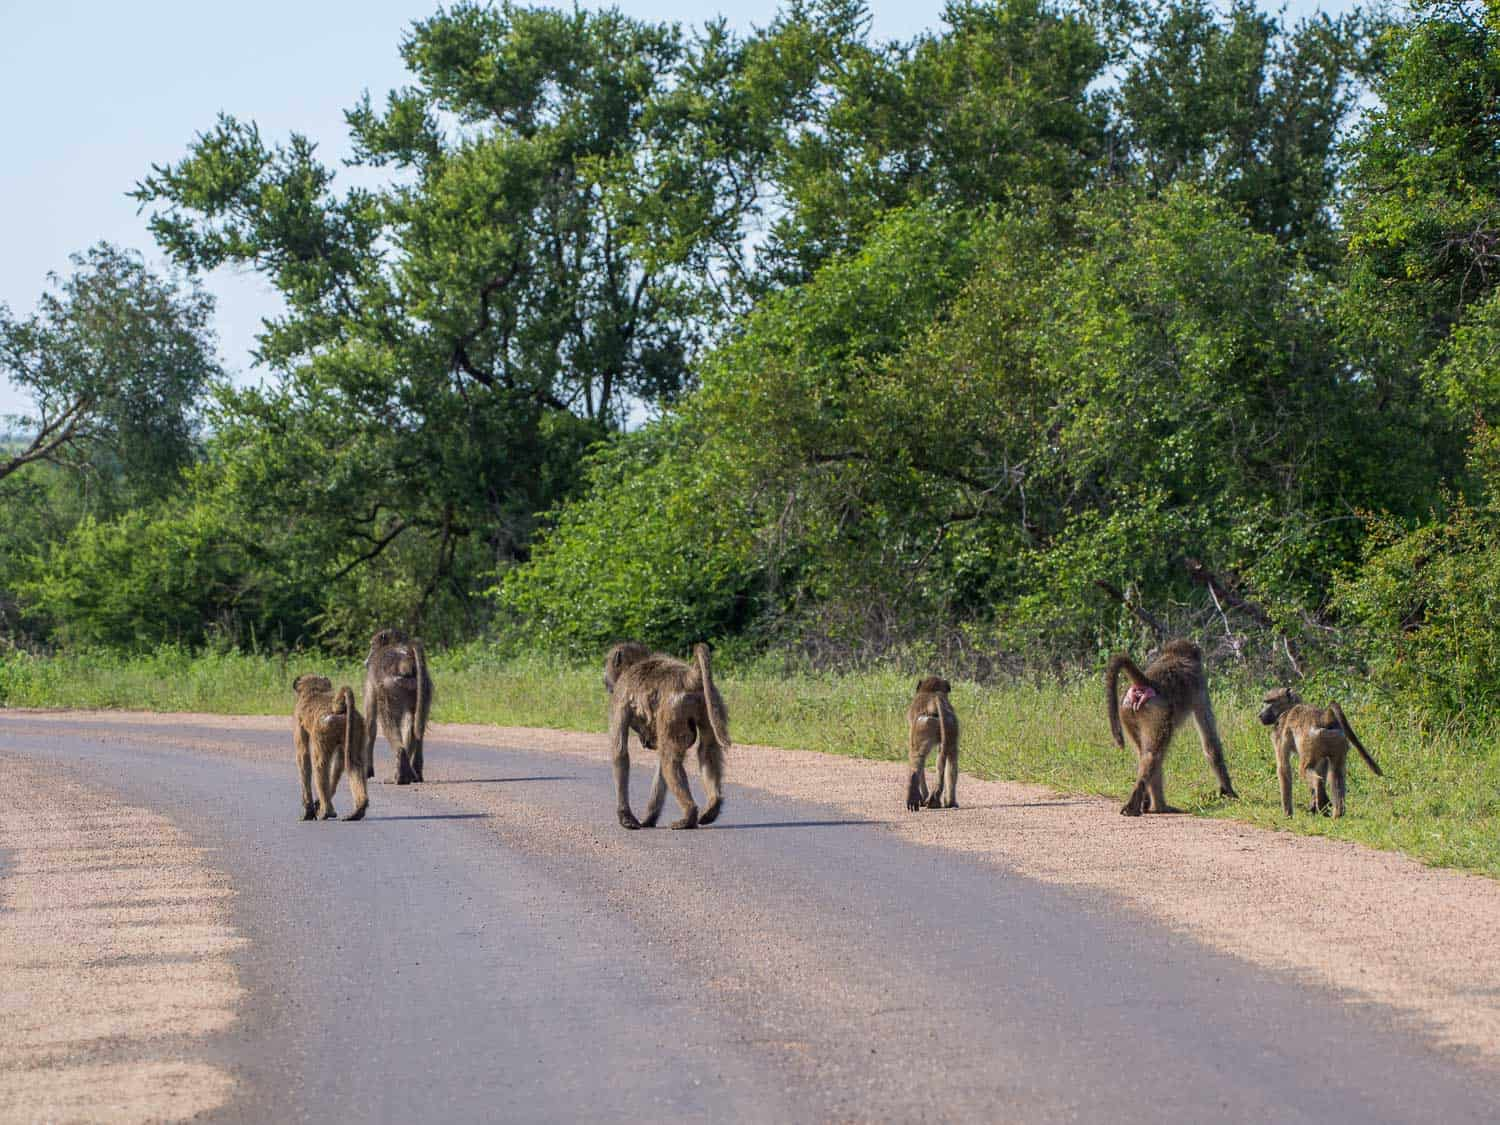 Baboons strolling down the road in Kruger National Park on our self-drive safari